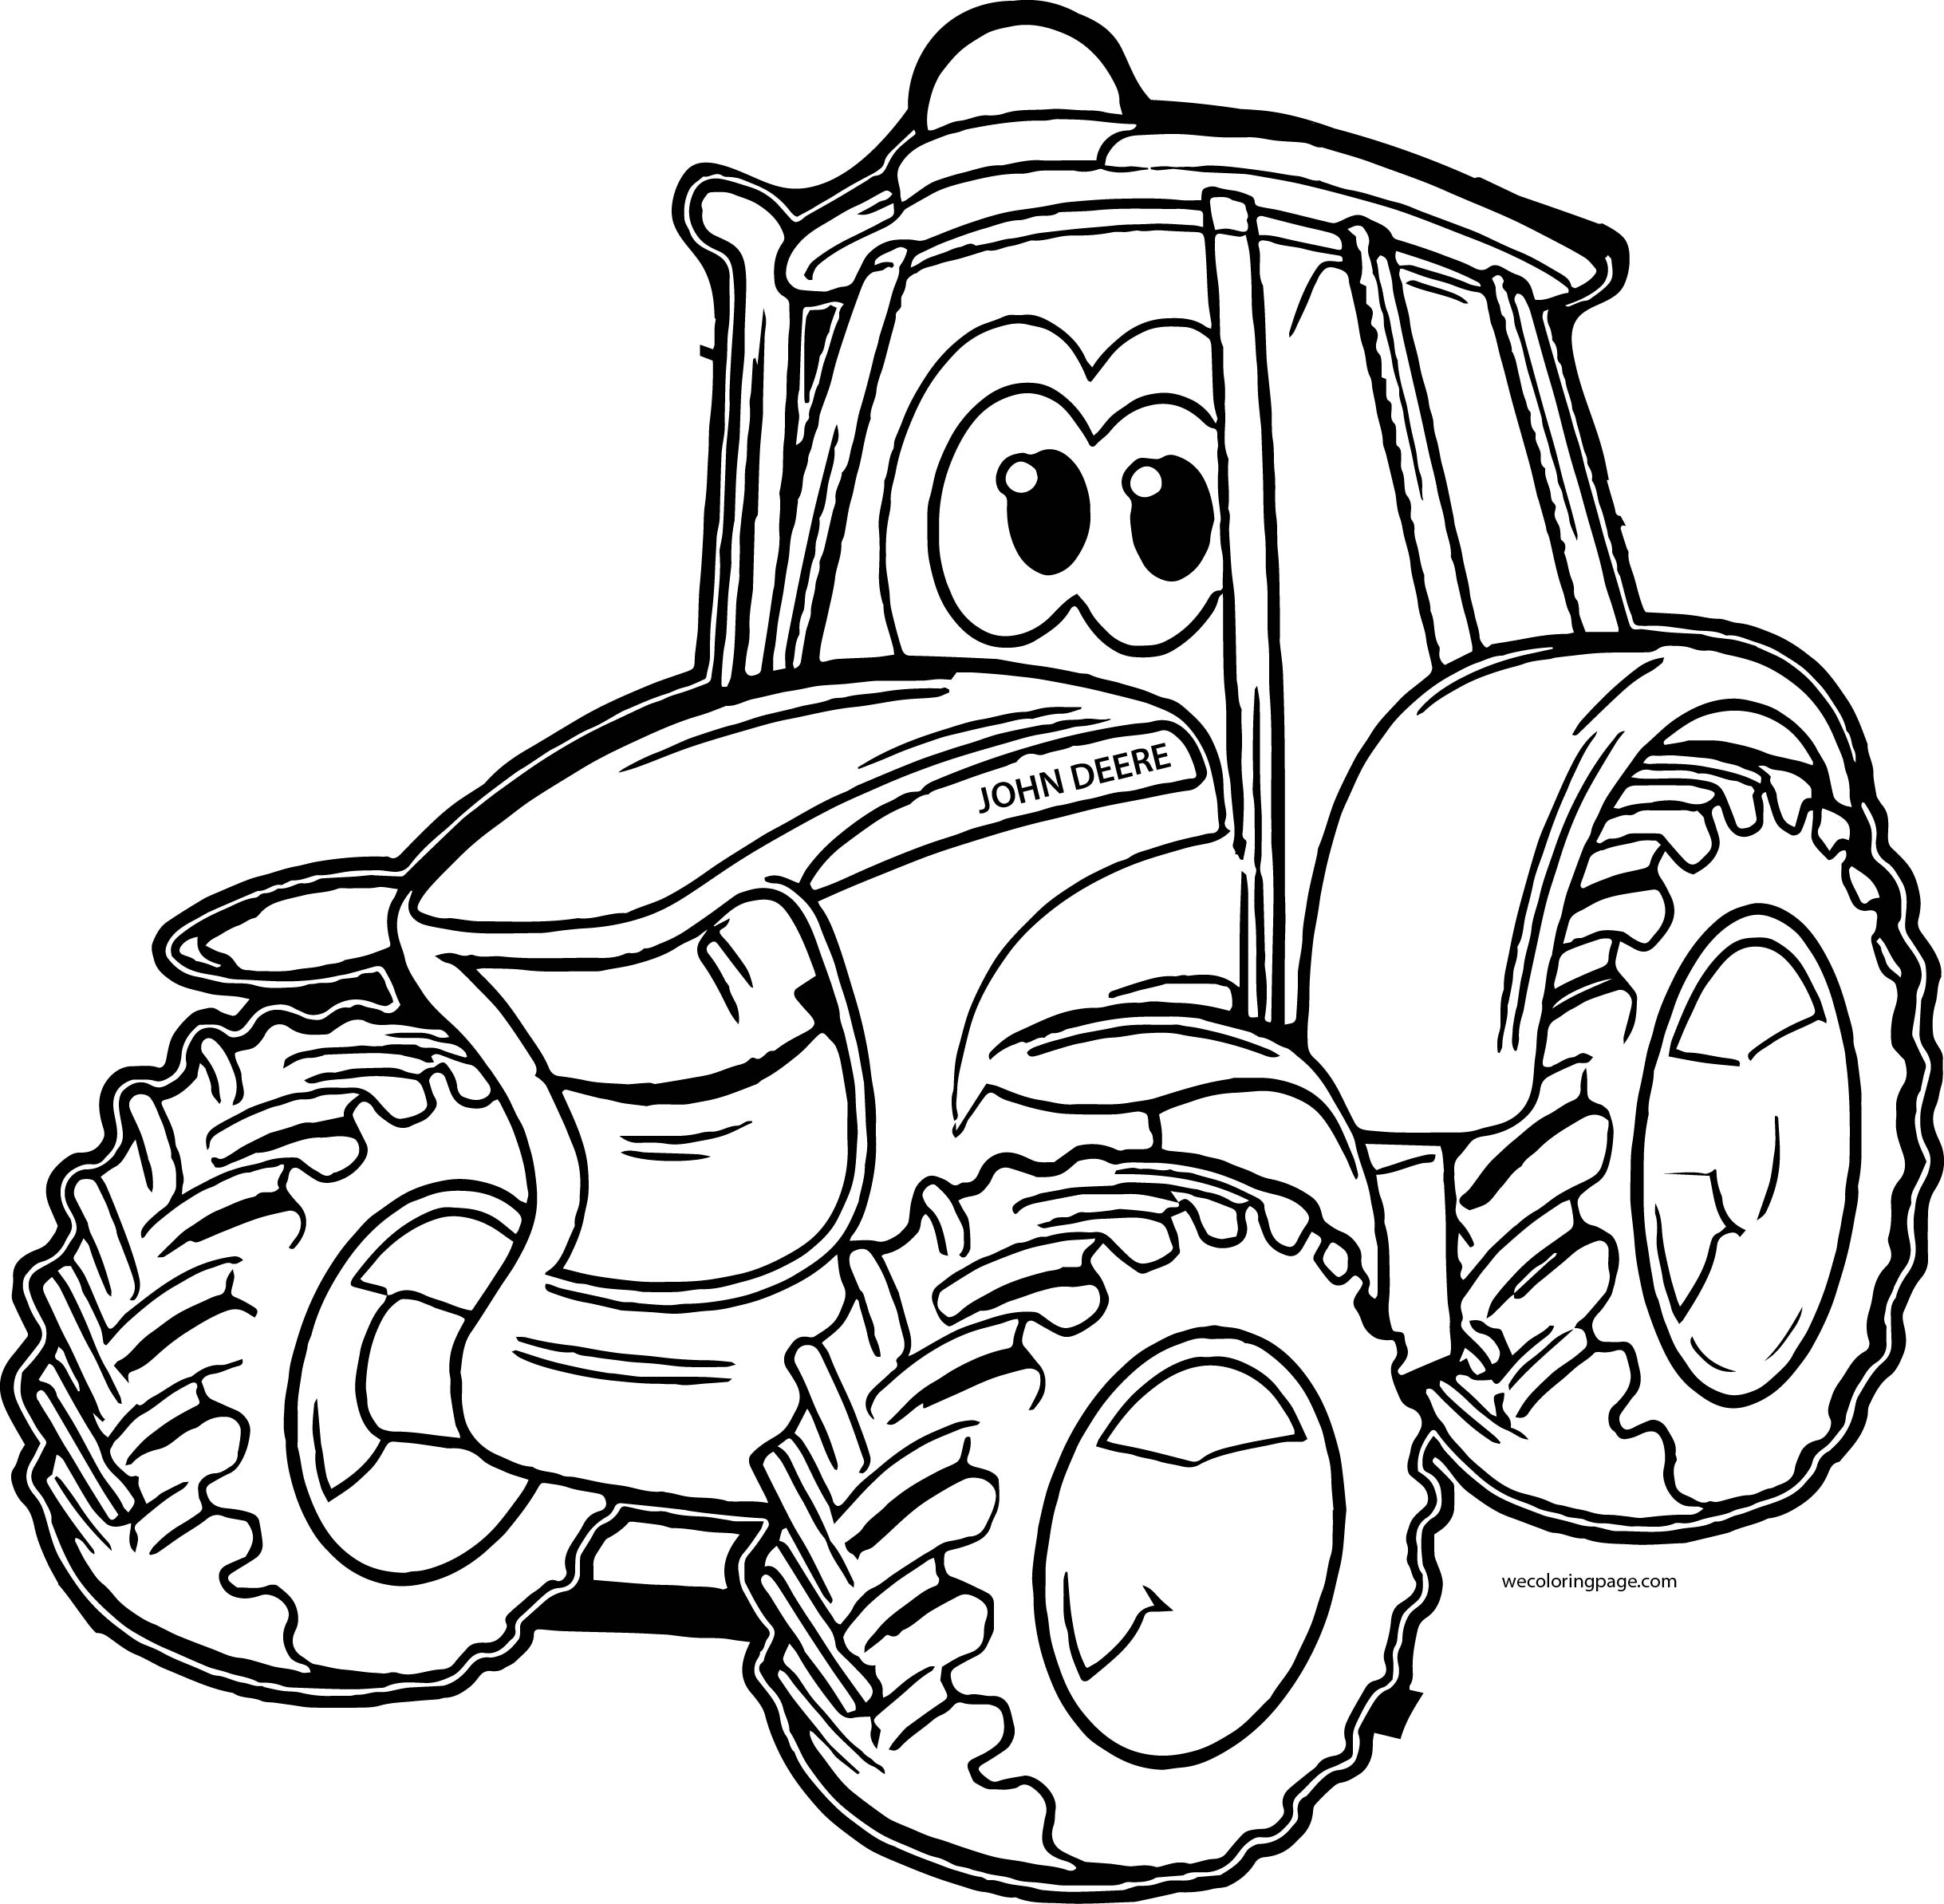 Uncategorized John Deere Tractor Coloring Pages john johnny deere tractor coloring pages wecoloringpage pages